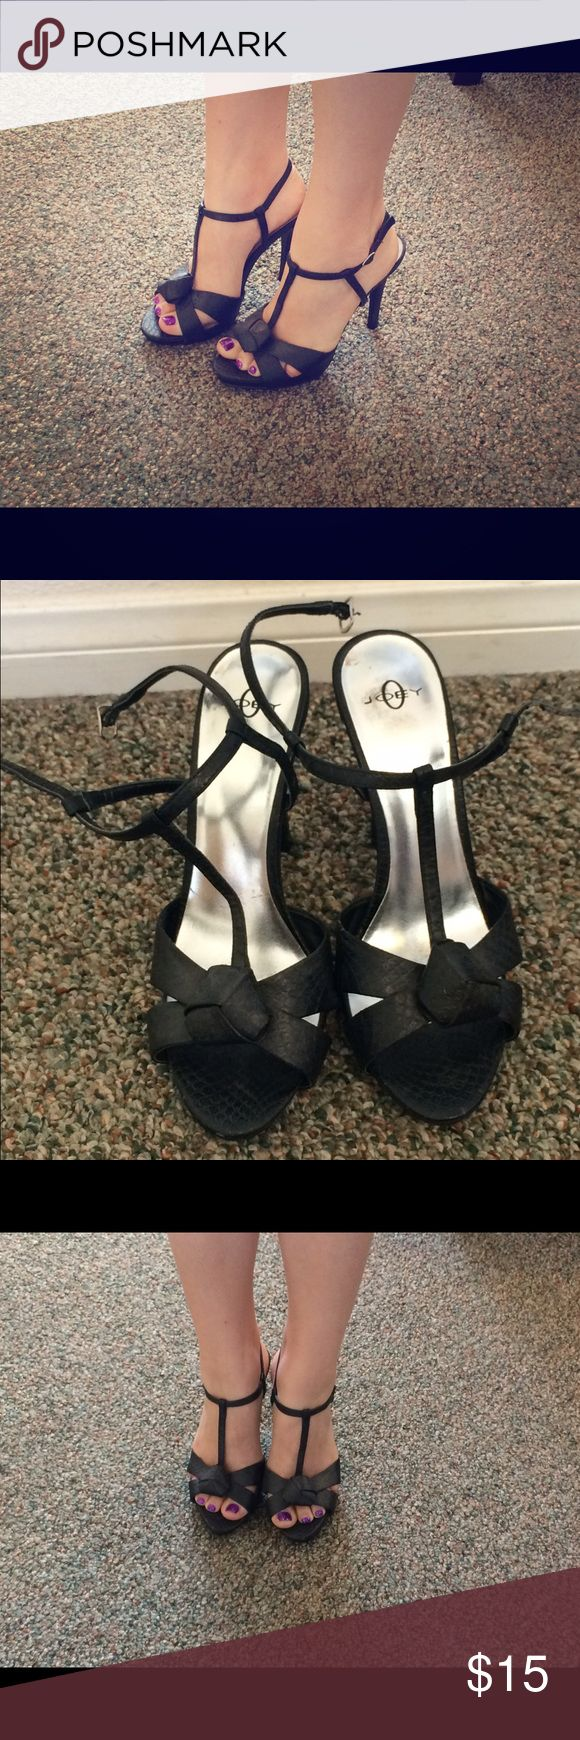 Black heels Very cute black heels, they are work down just a little bit on the strap, I will reflect in price. Will take offers. Shoes